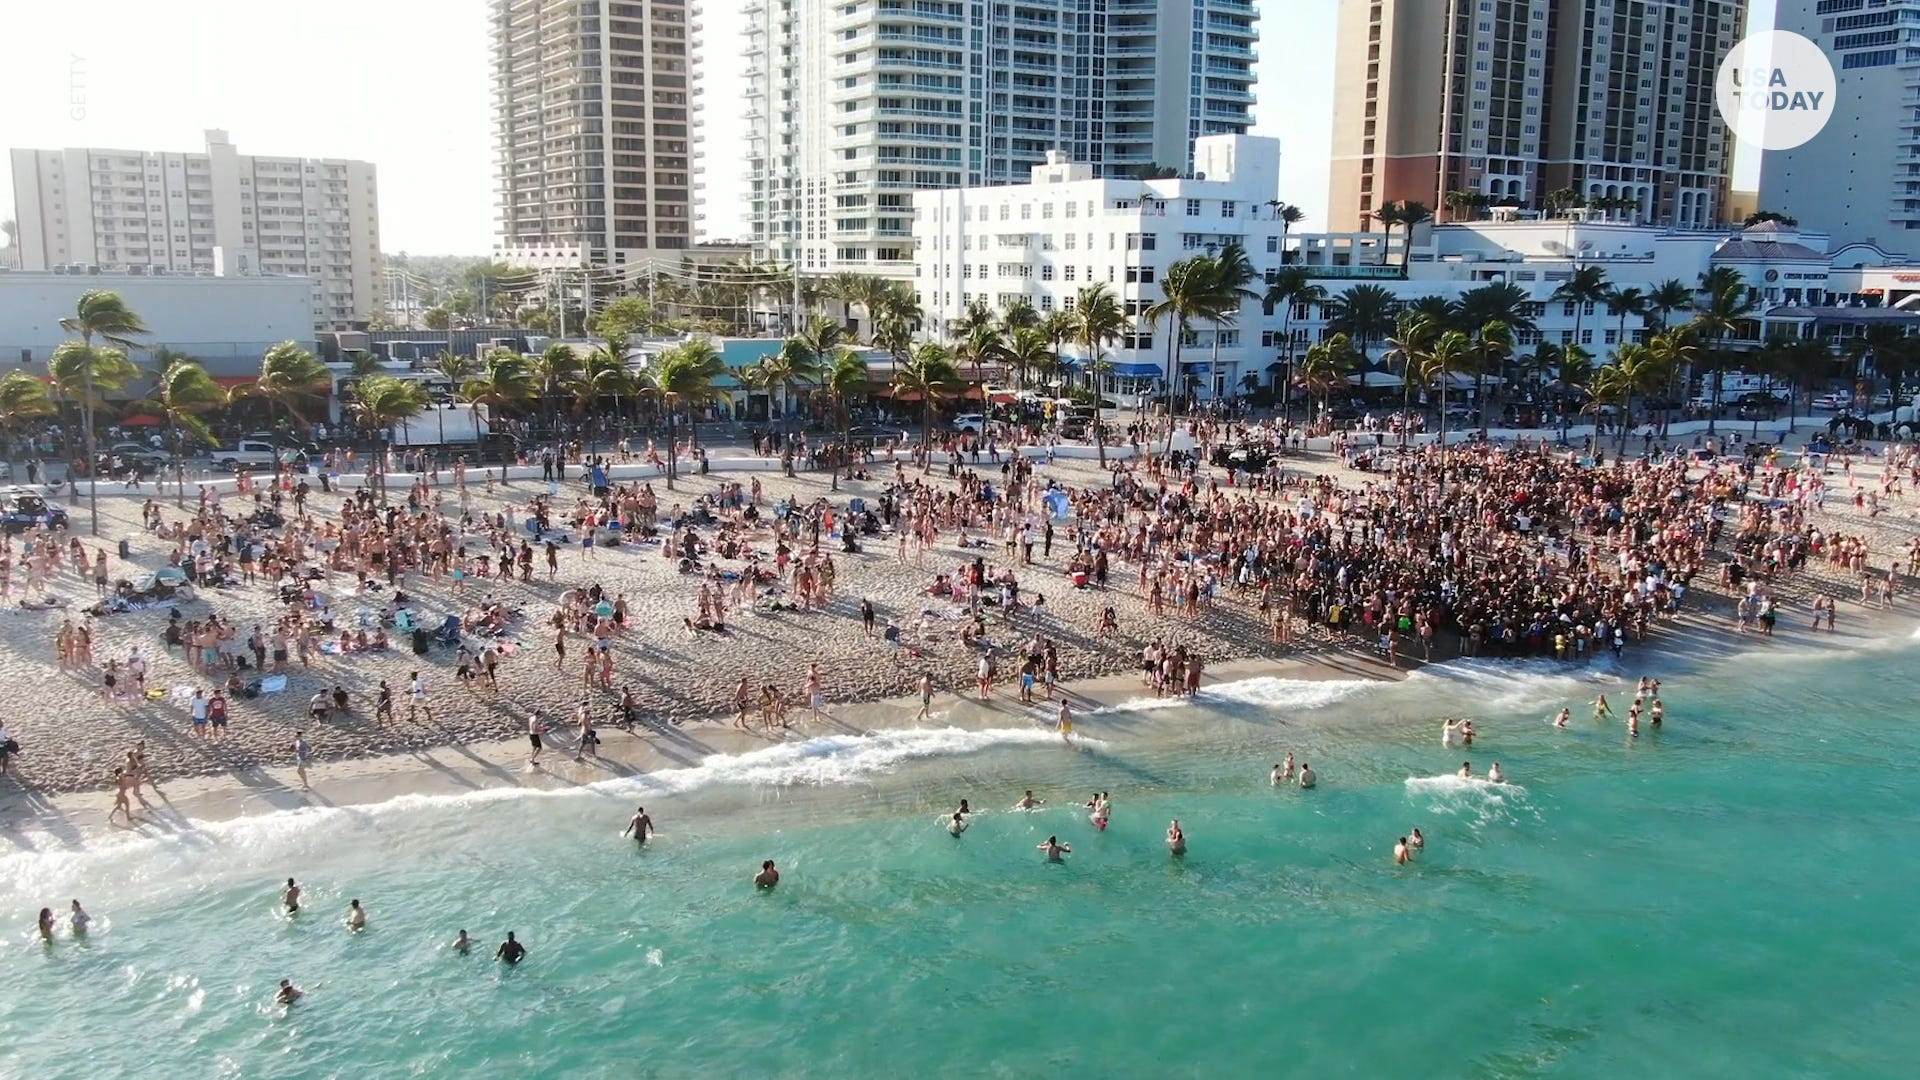 Destinations ditch CDC guidelines for beaches